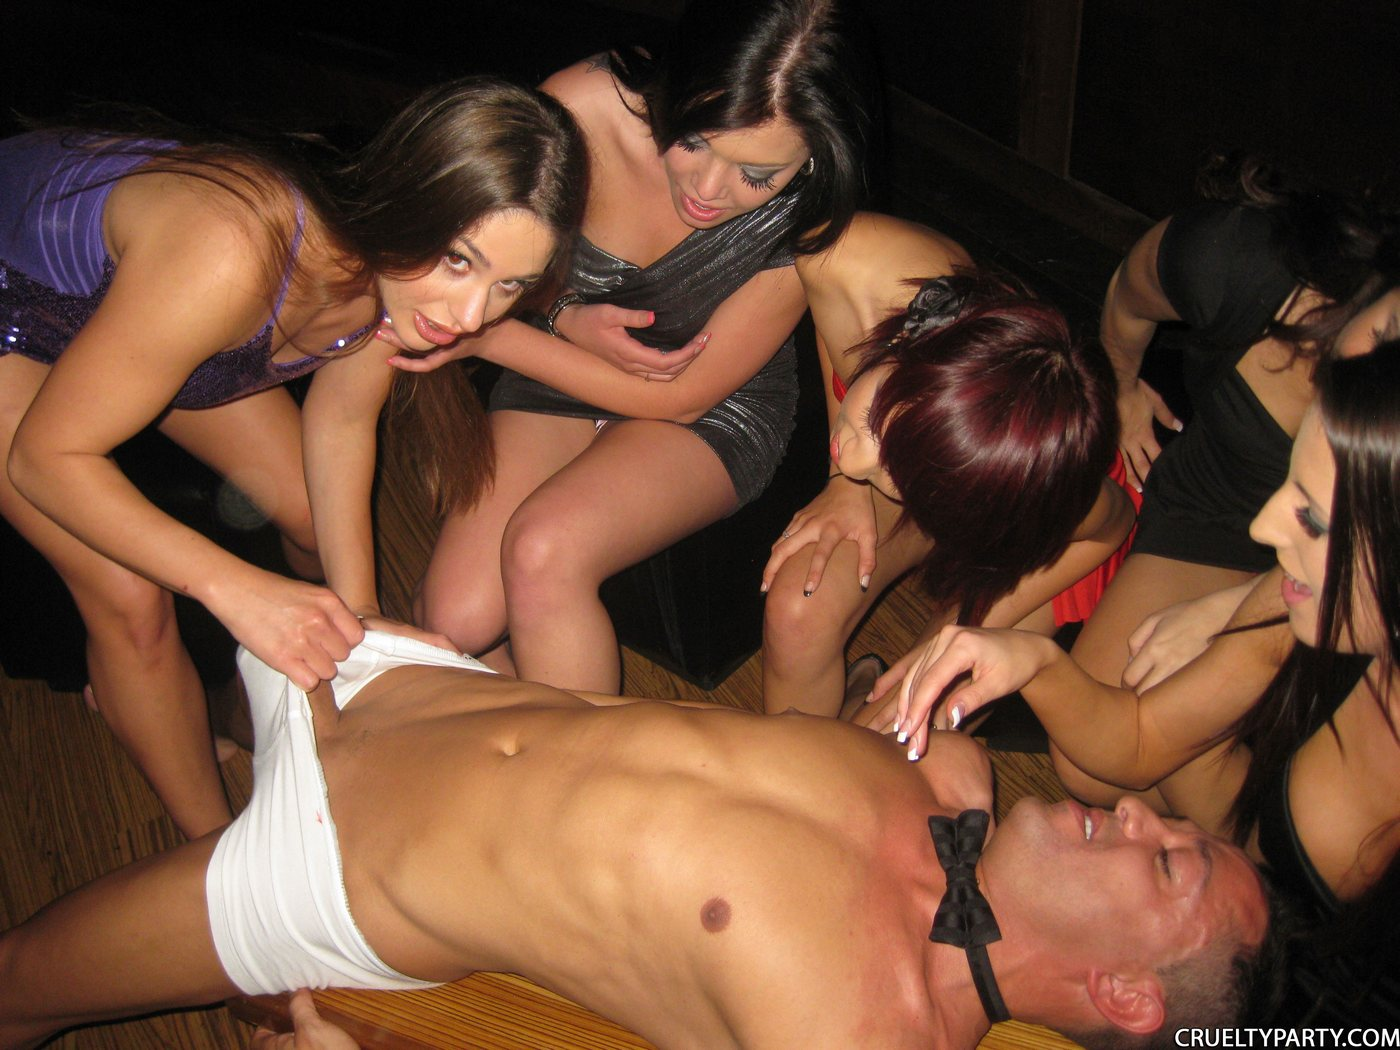 Sex scene girls night out sex